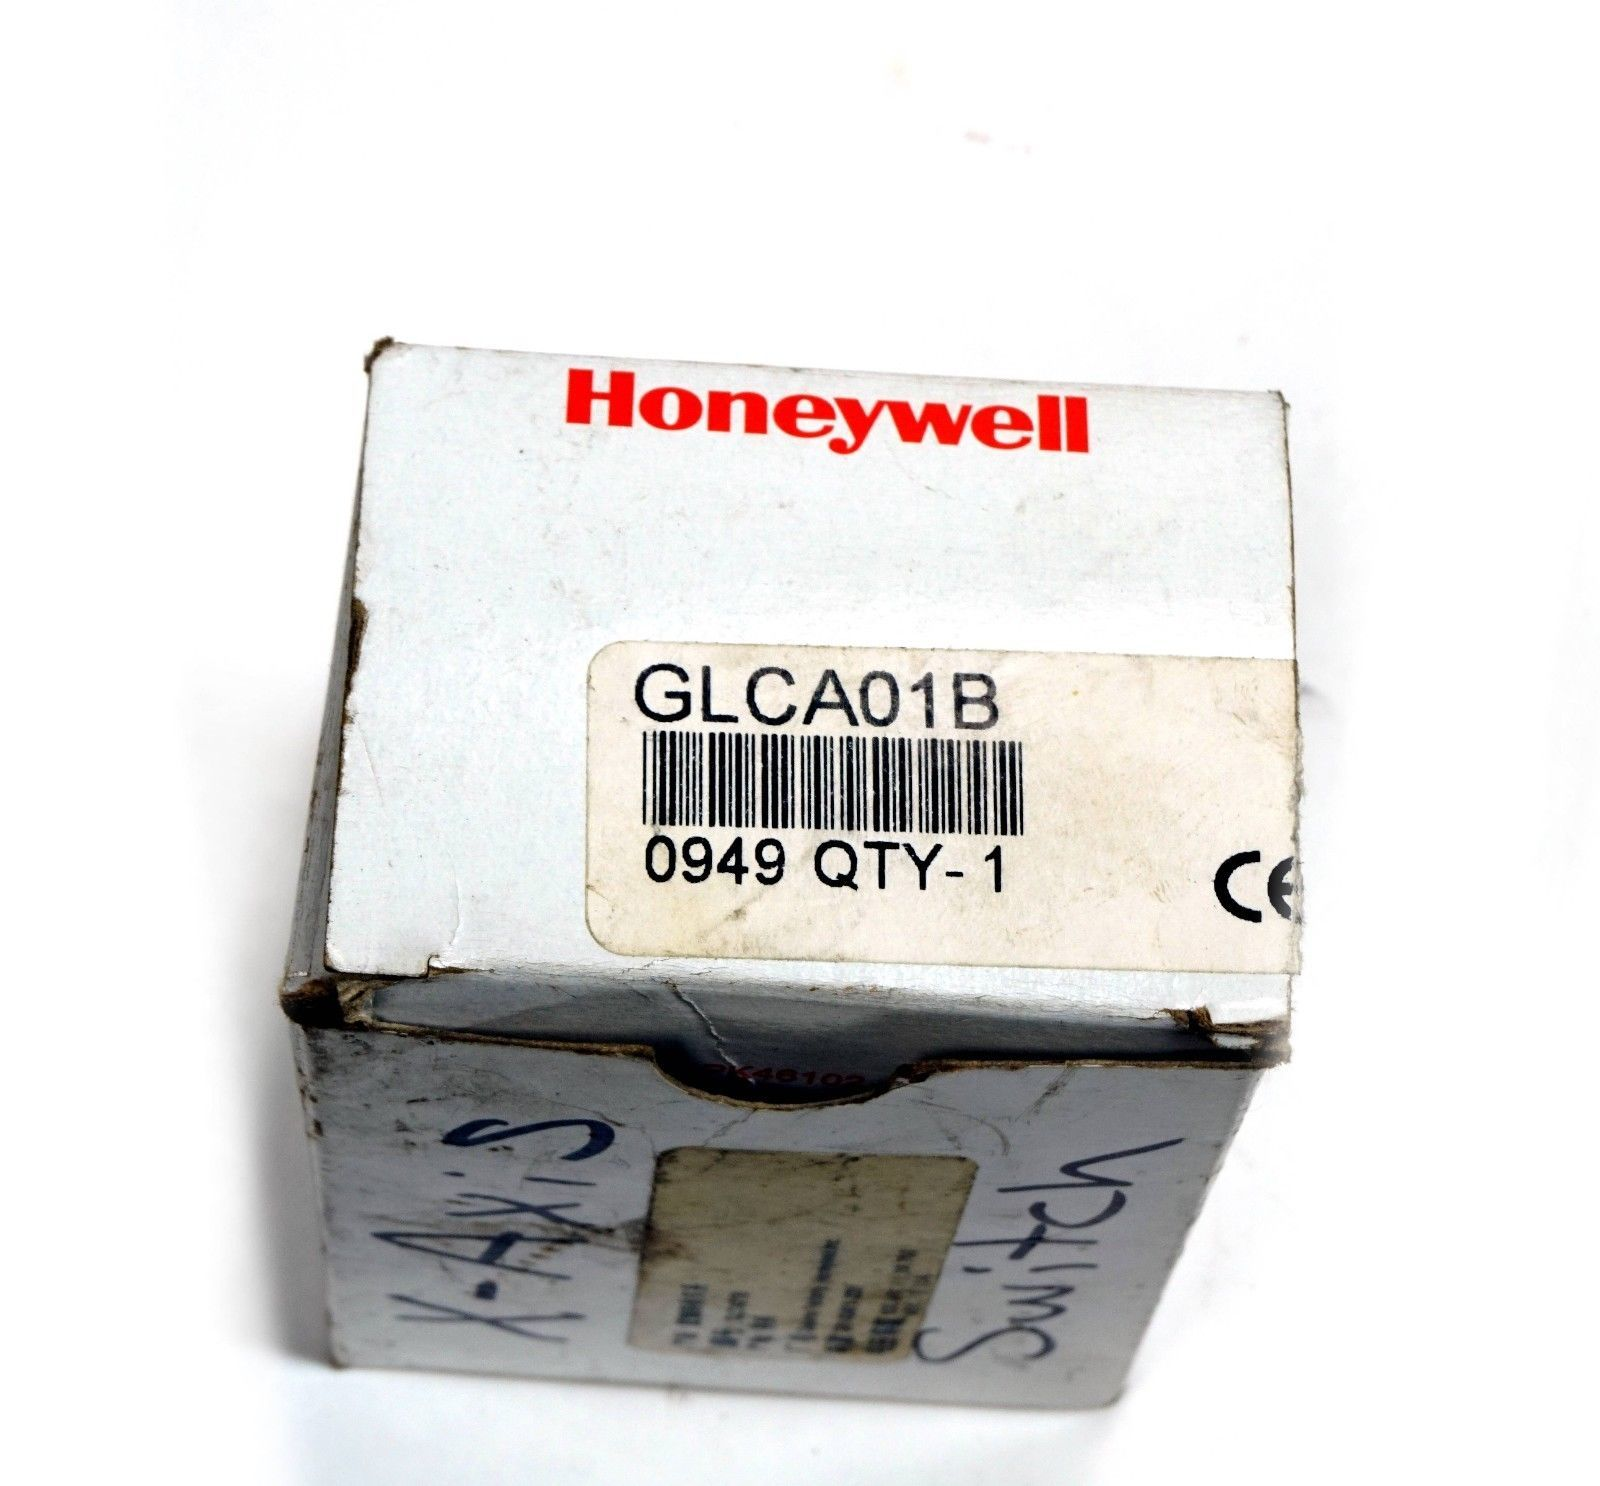 Honeywell Micro Switch Glca01b Global Limit And 47 Similar Items Lever Actuator Microswitch Spdt 5a Ebay Top Plunger 1nc 1no